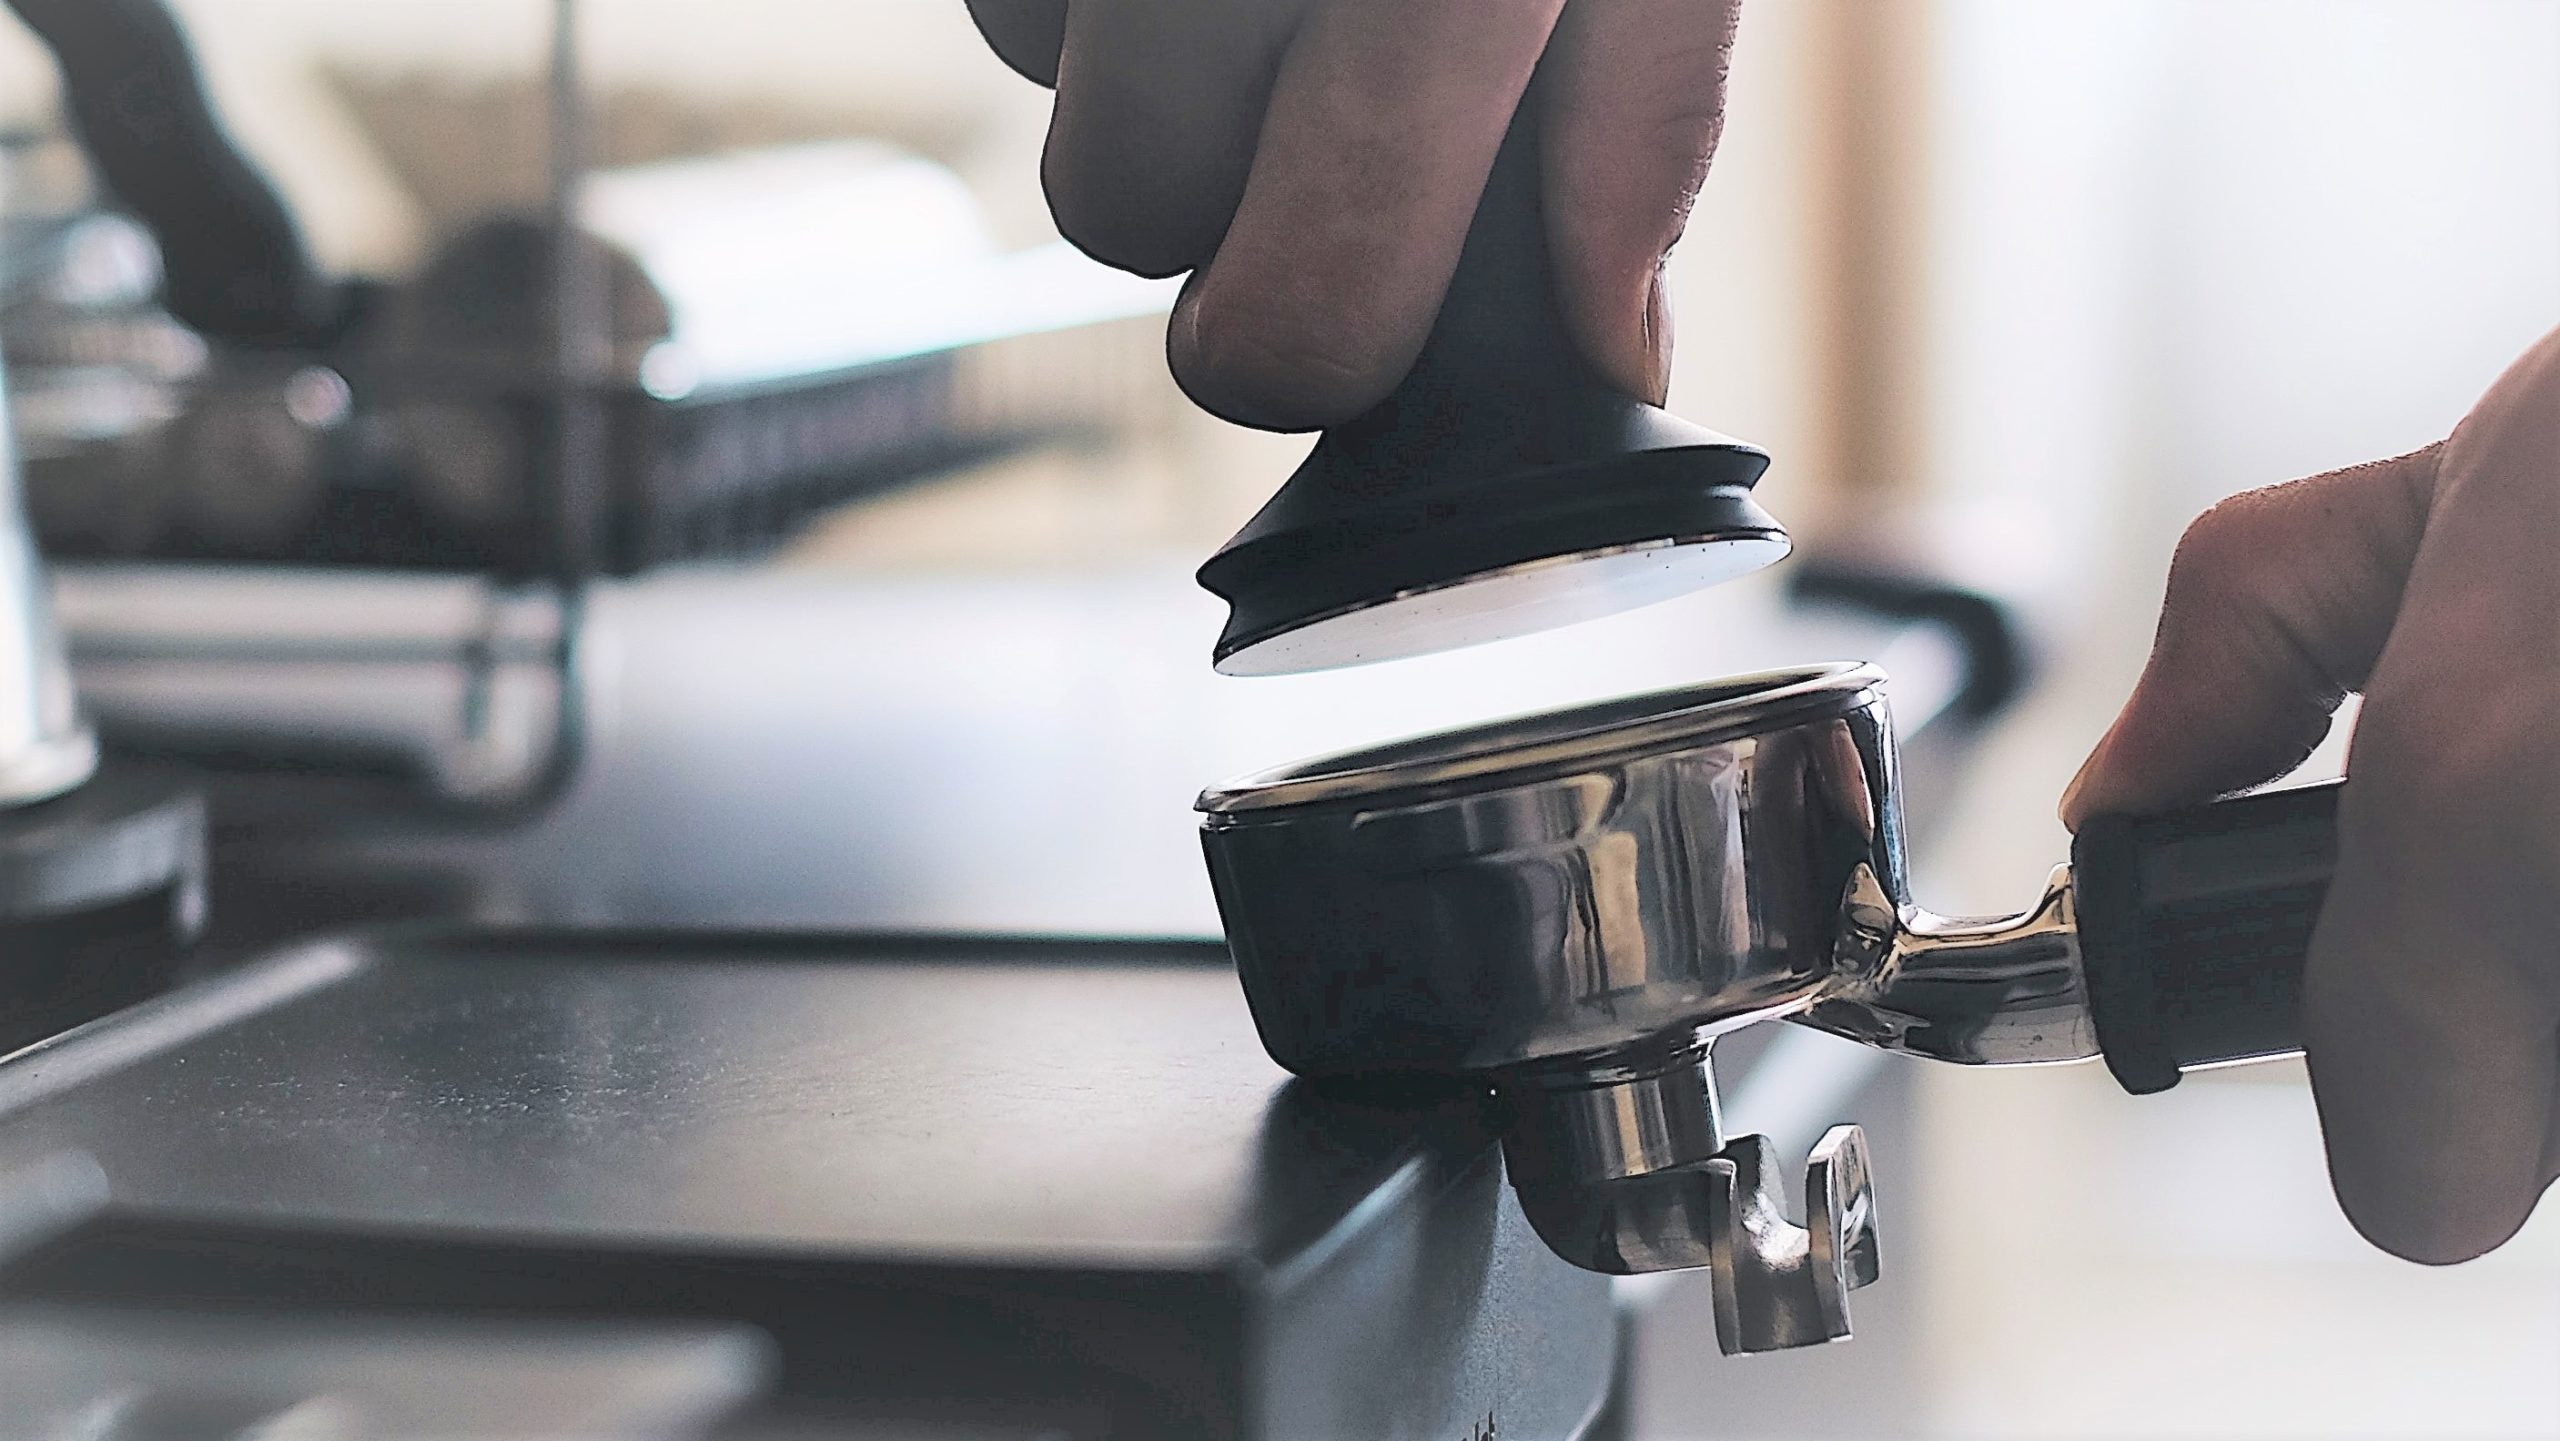 a person tampering coffee